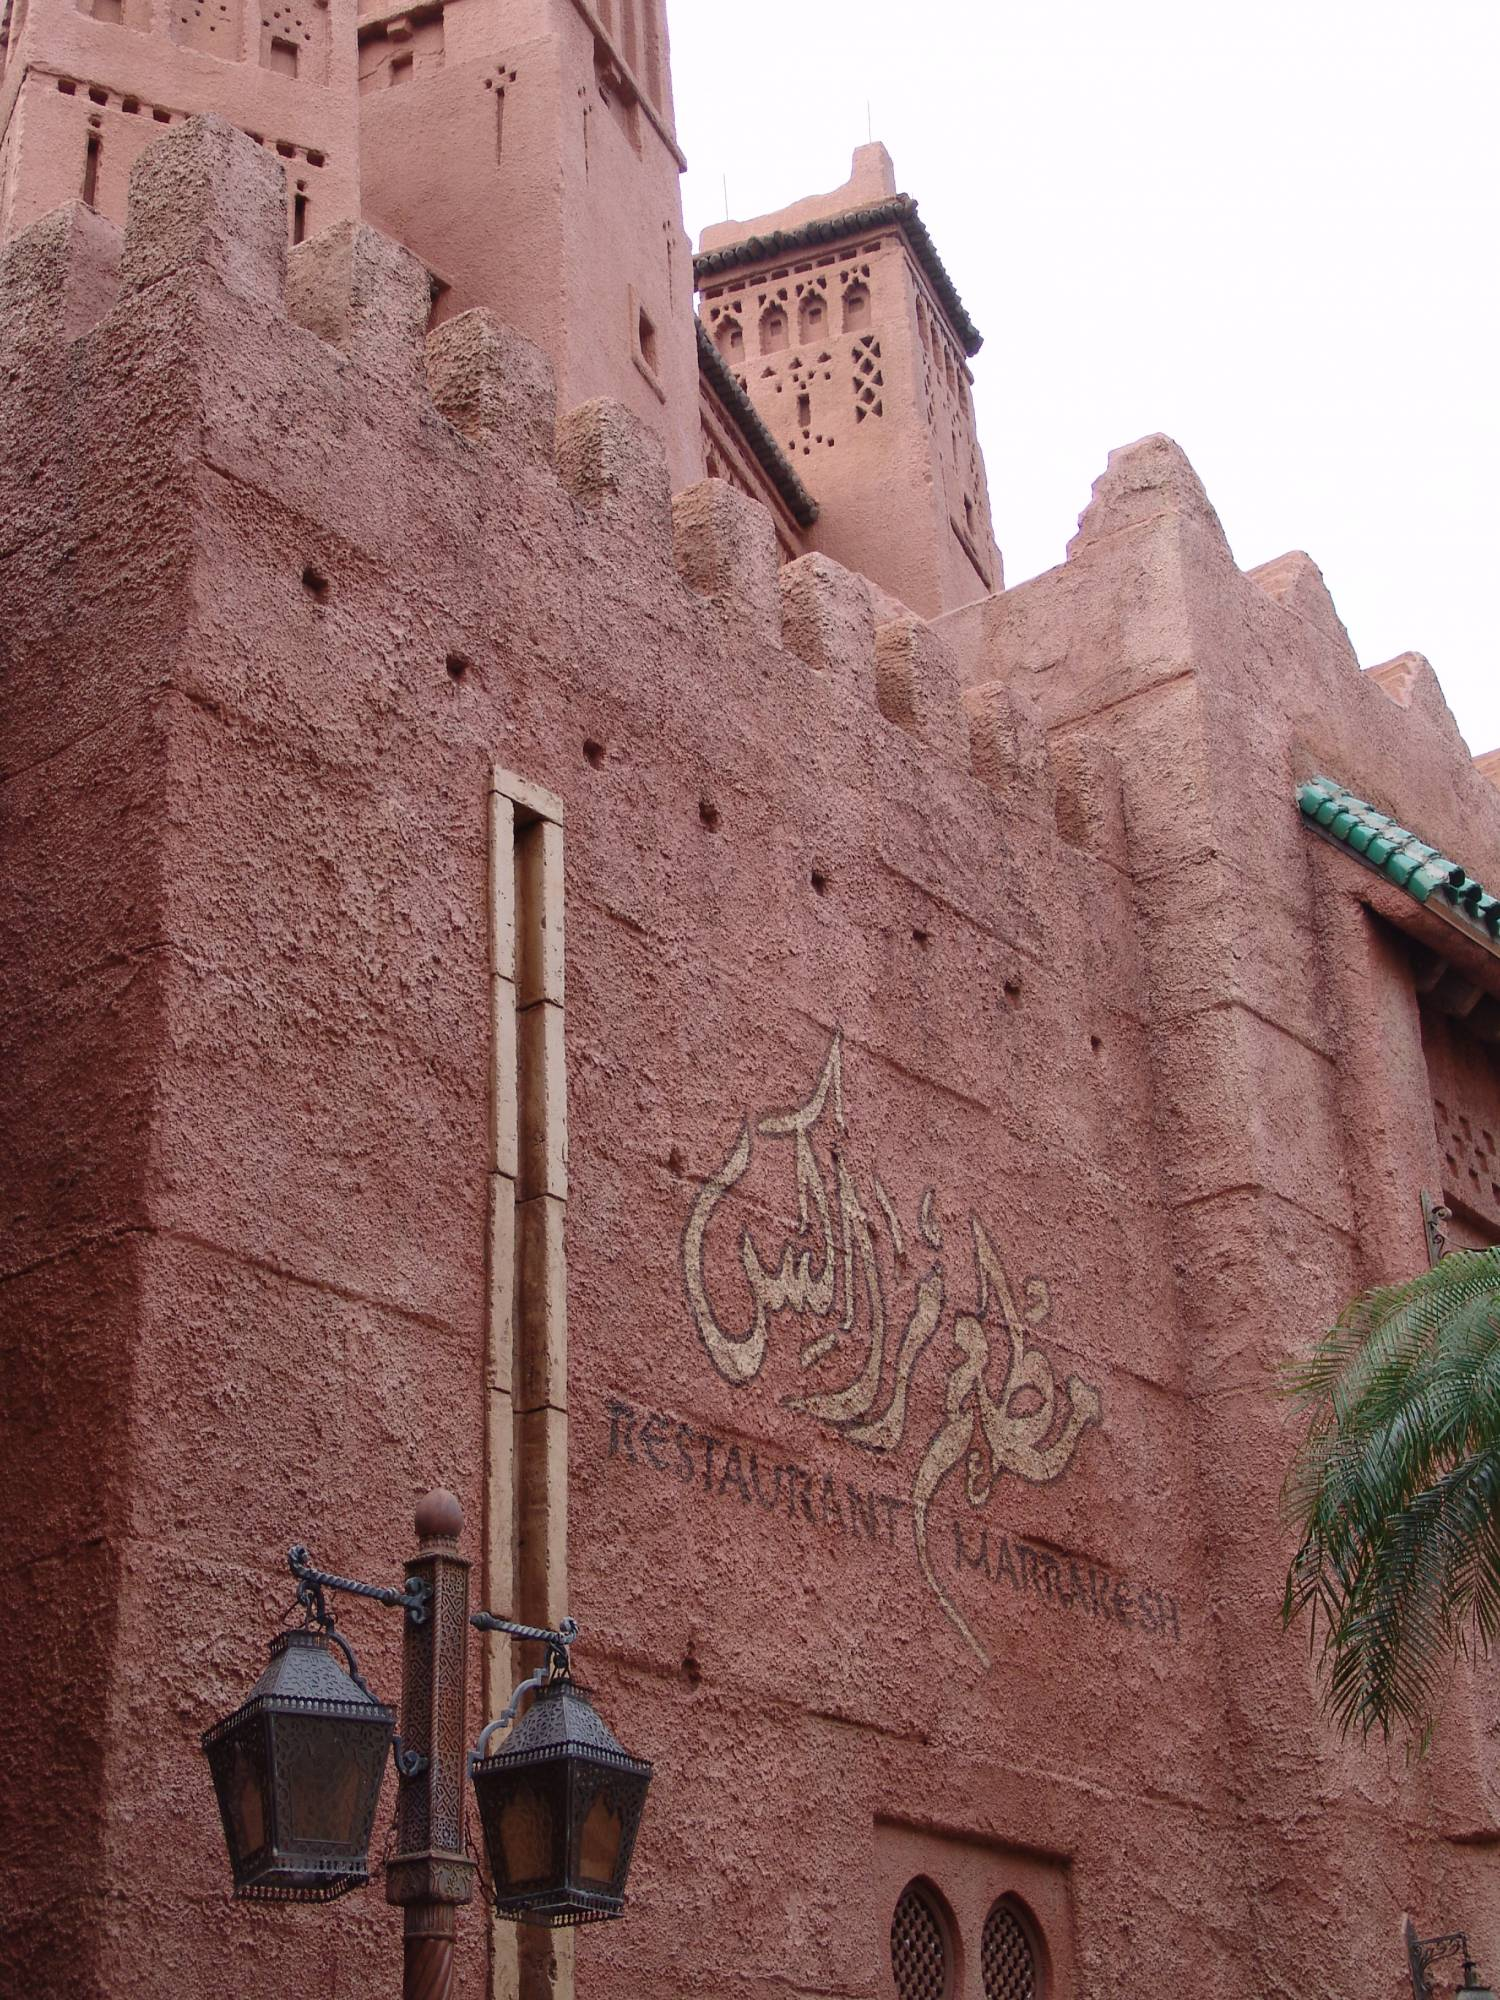 Epcot - Morocco photo